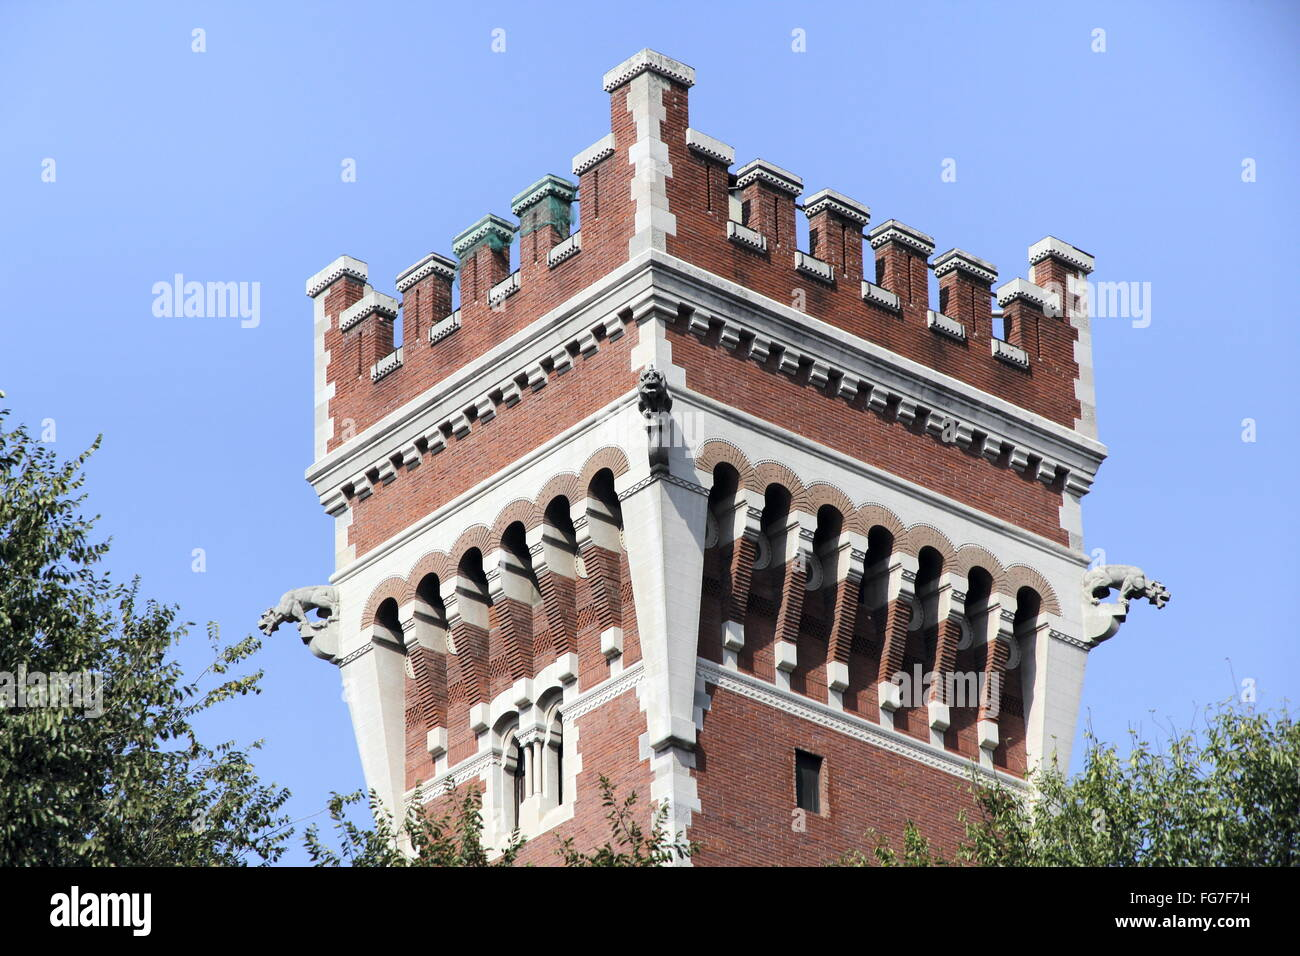 geography / travel, Italy, Lombardy, Milan, building, Casa Cova, tower, Additional-Rights-Clearance-Info-Not-Available - Stock Image